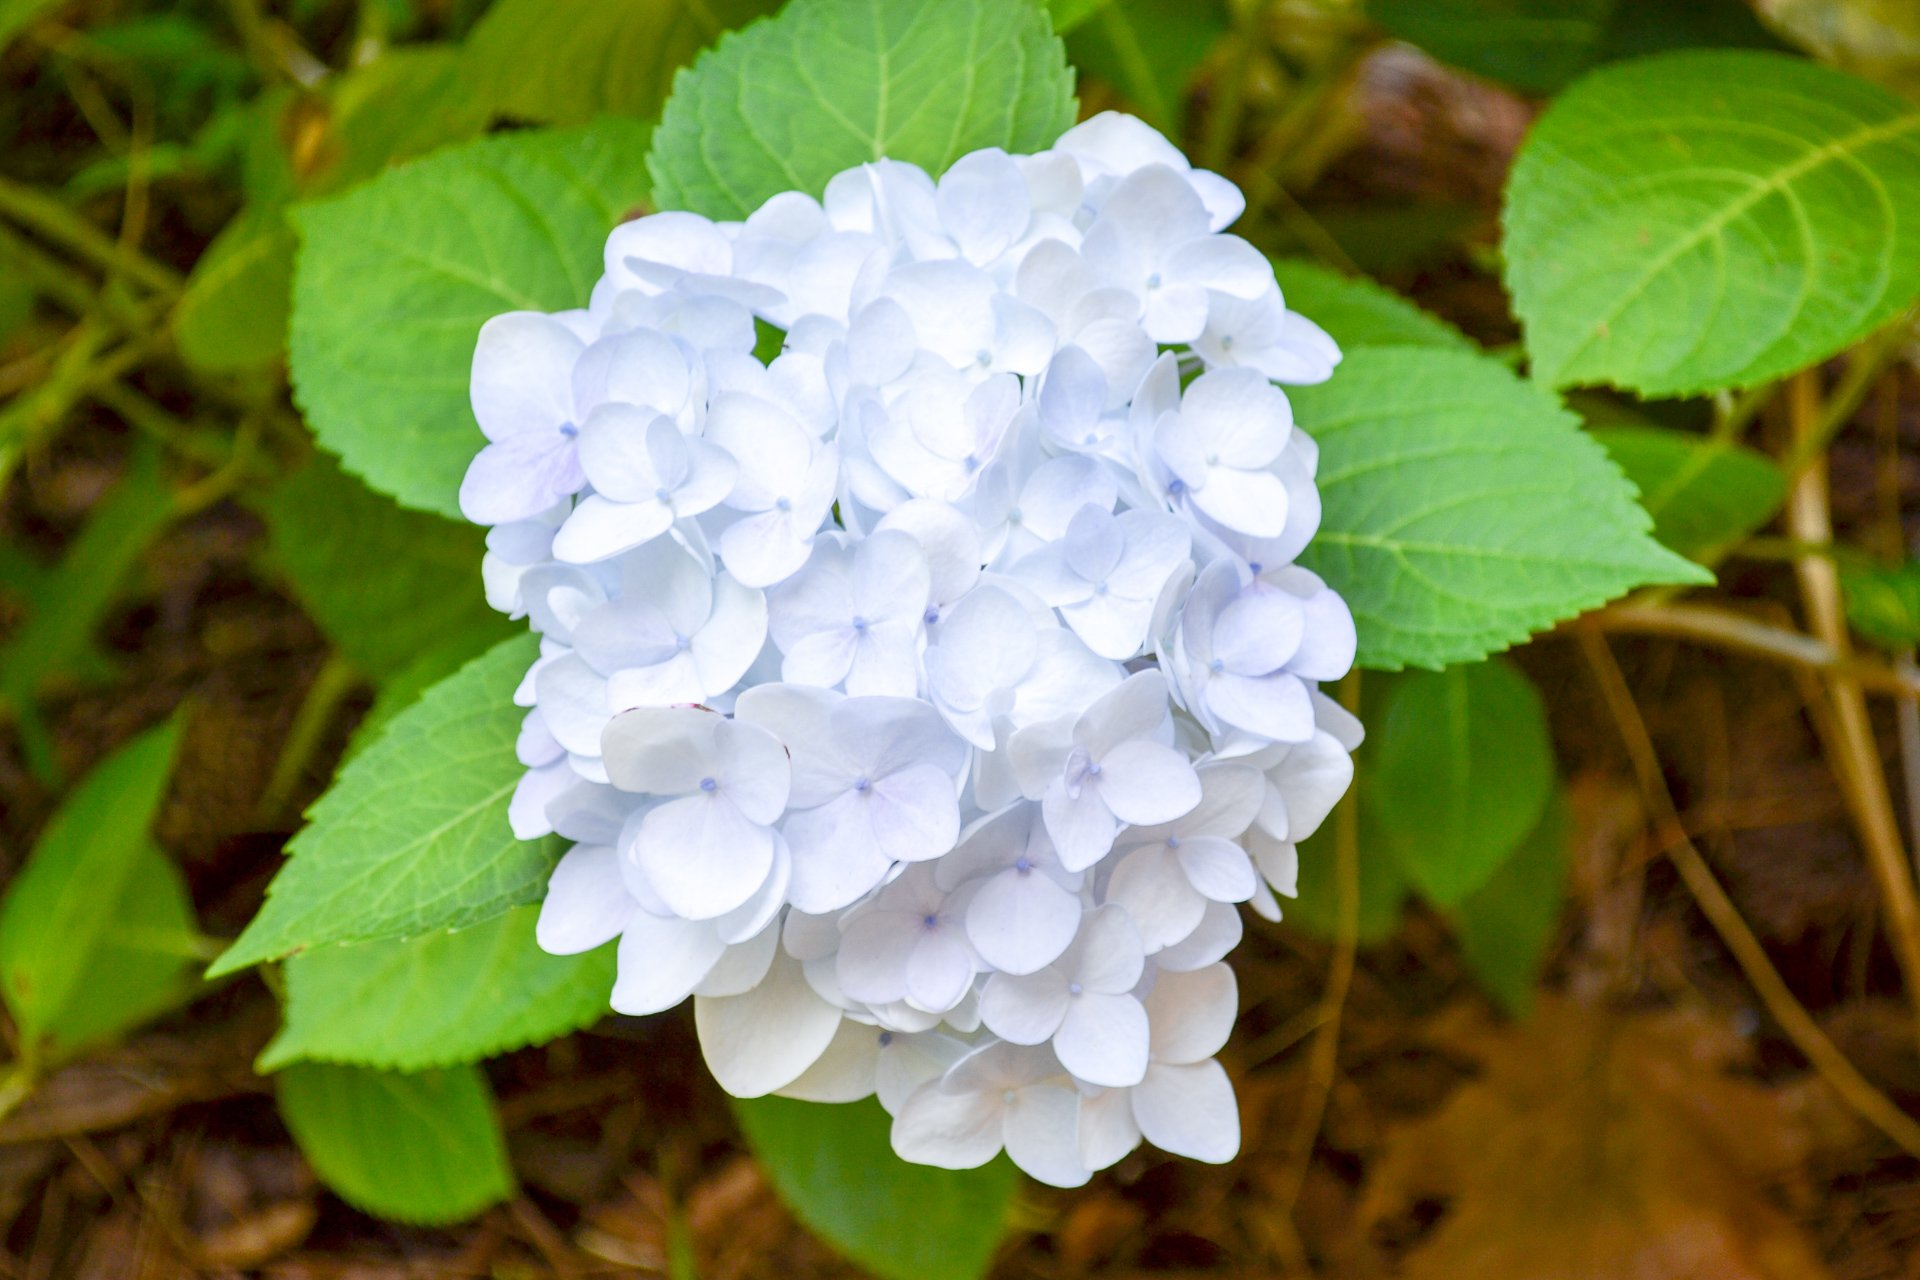 Blushing Bride hydrangeas feature white blooms tinged with hints of blue and gray.